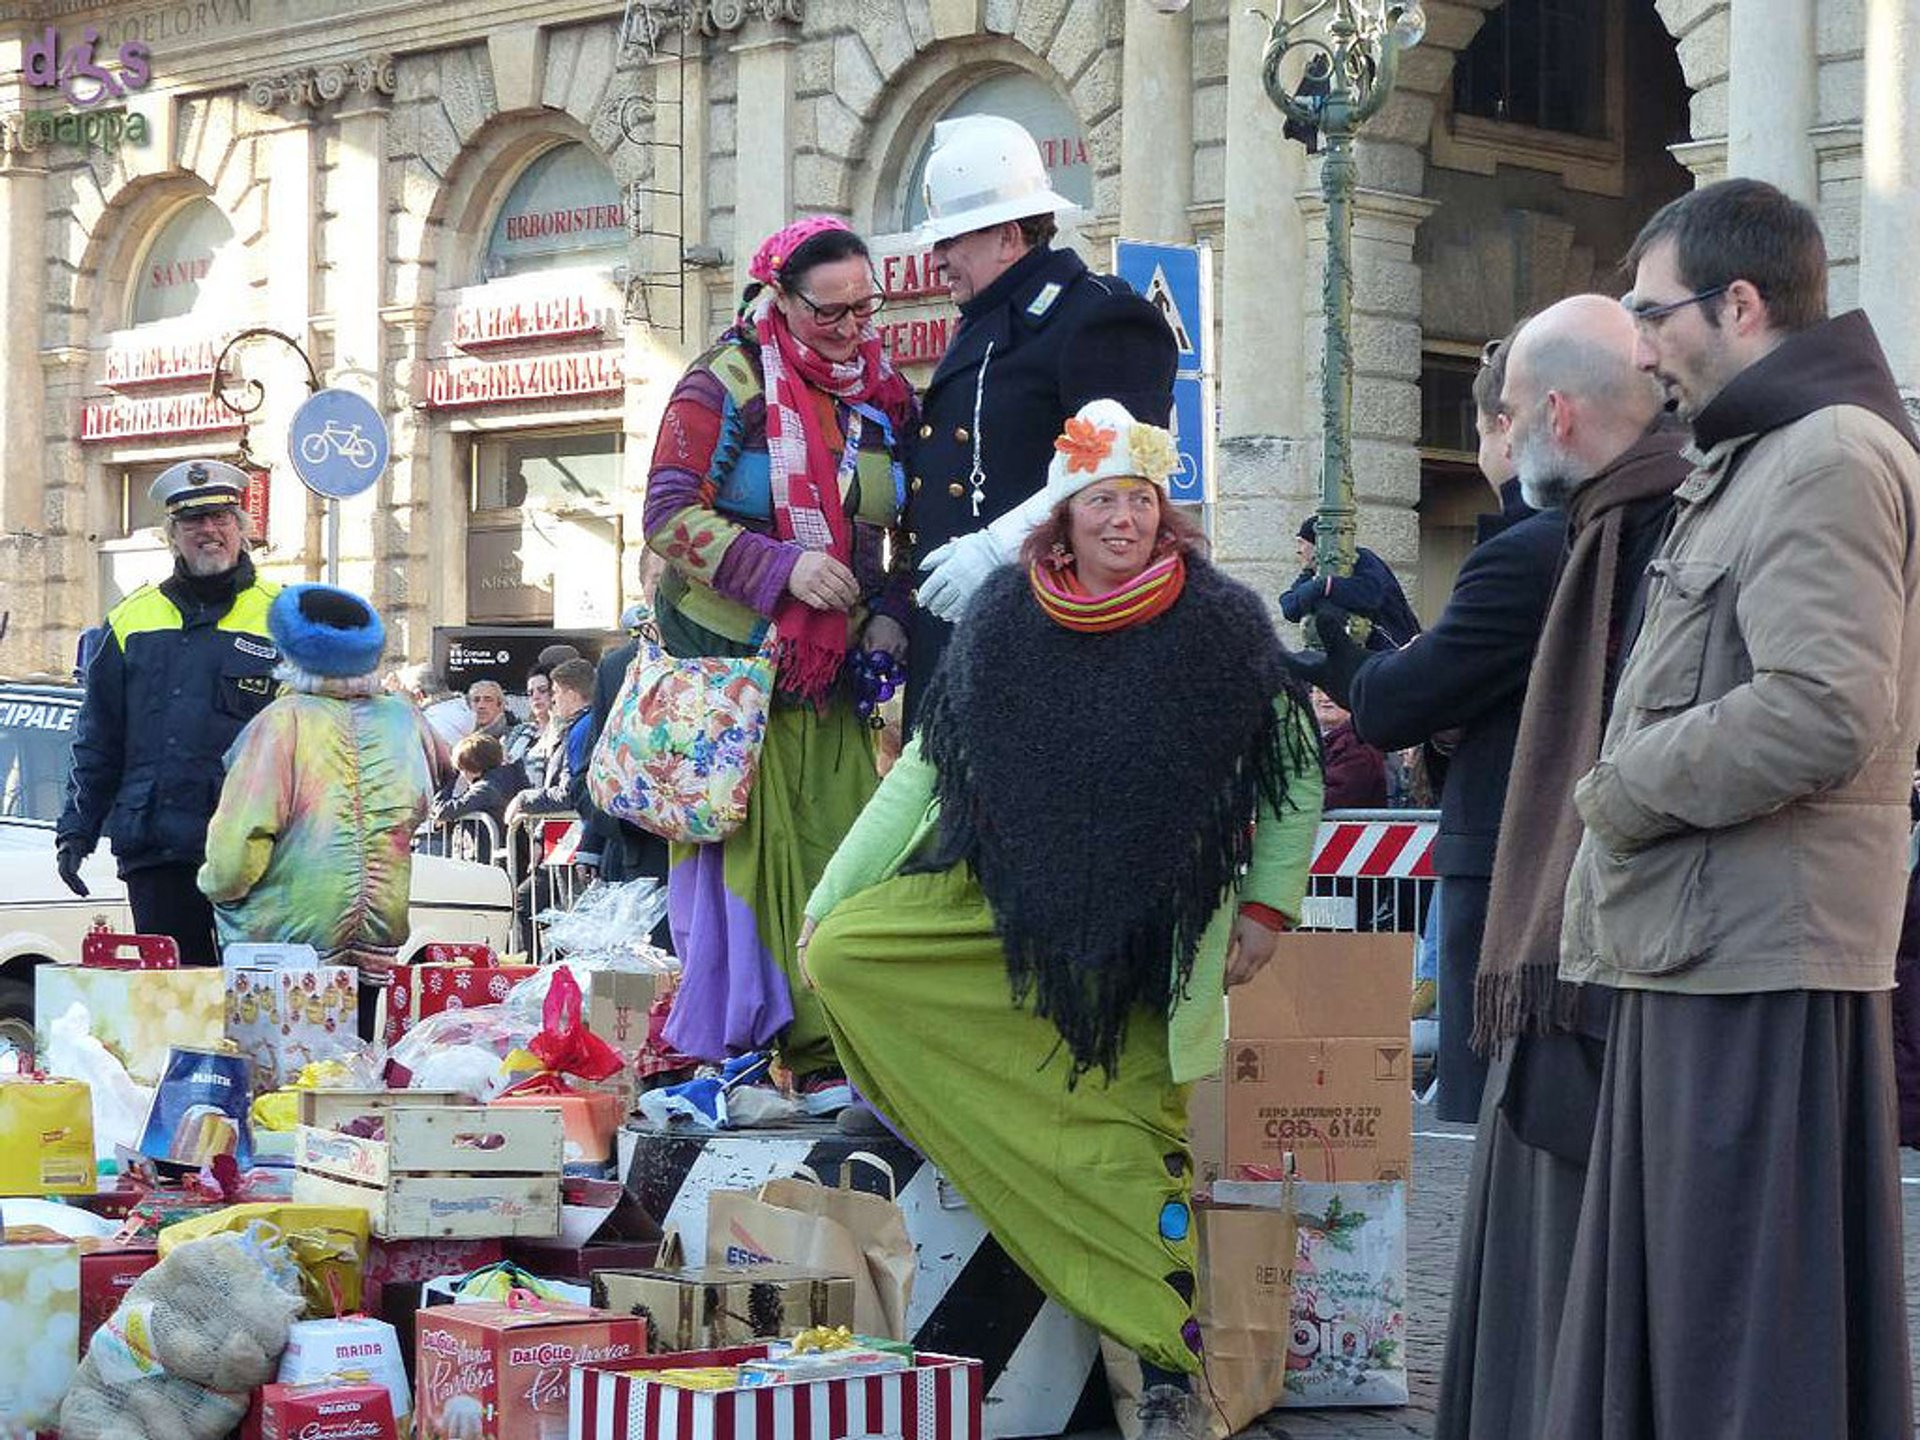 Best time for La Befana (Epiphany) in Rome 2020